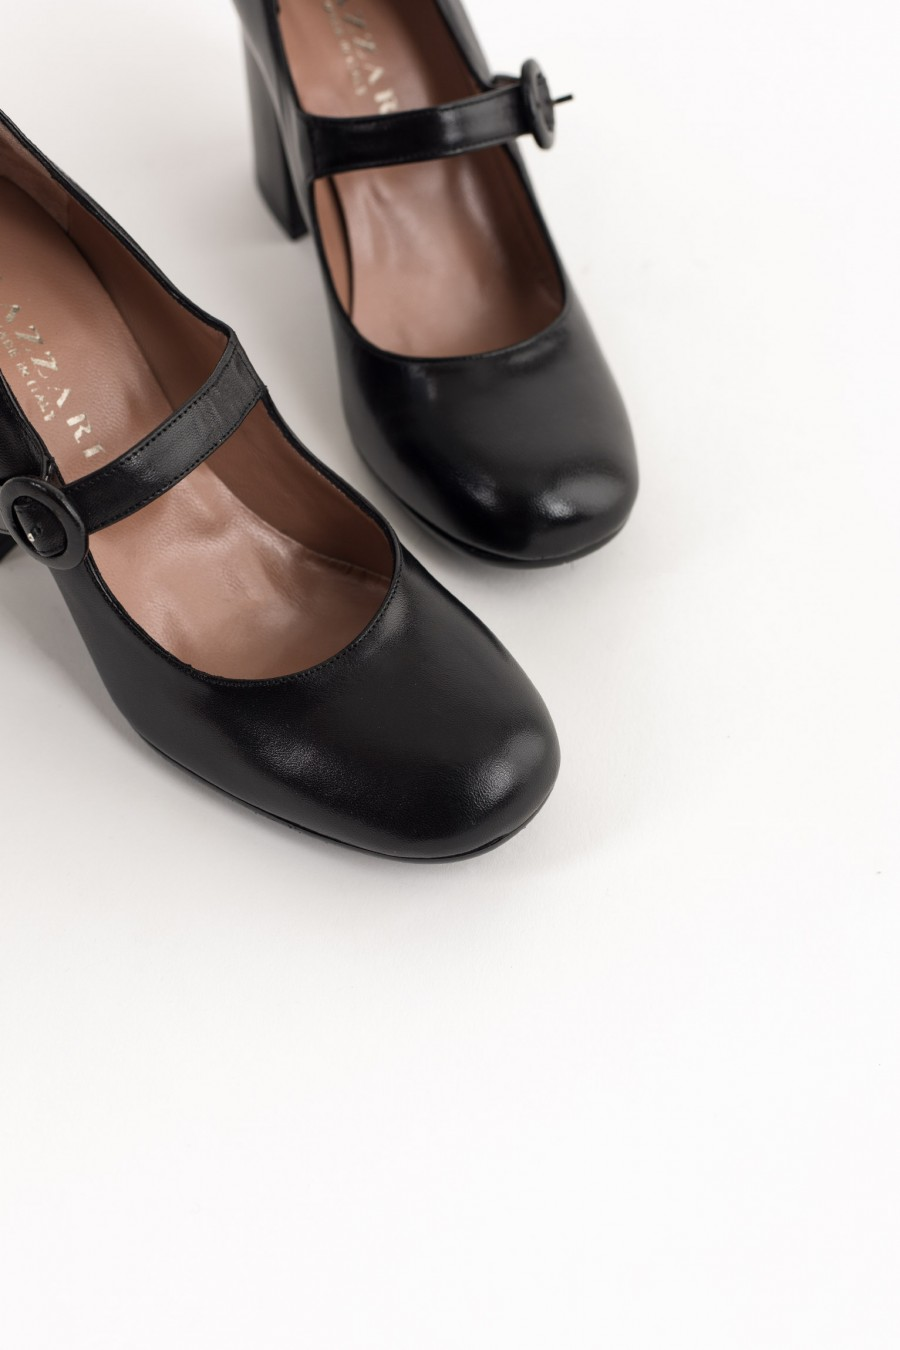 Black leather pointed toe Mary Jane